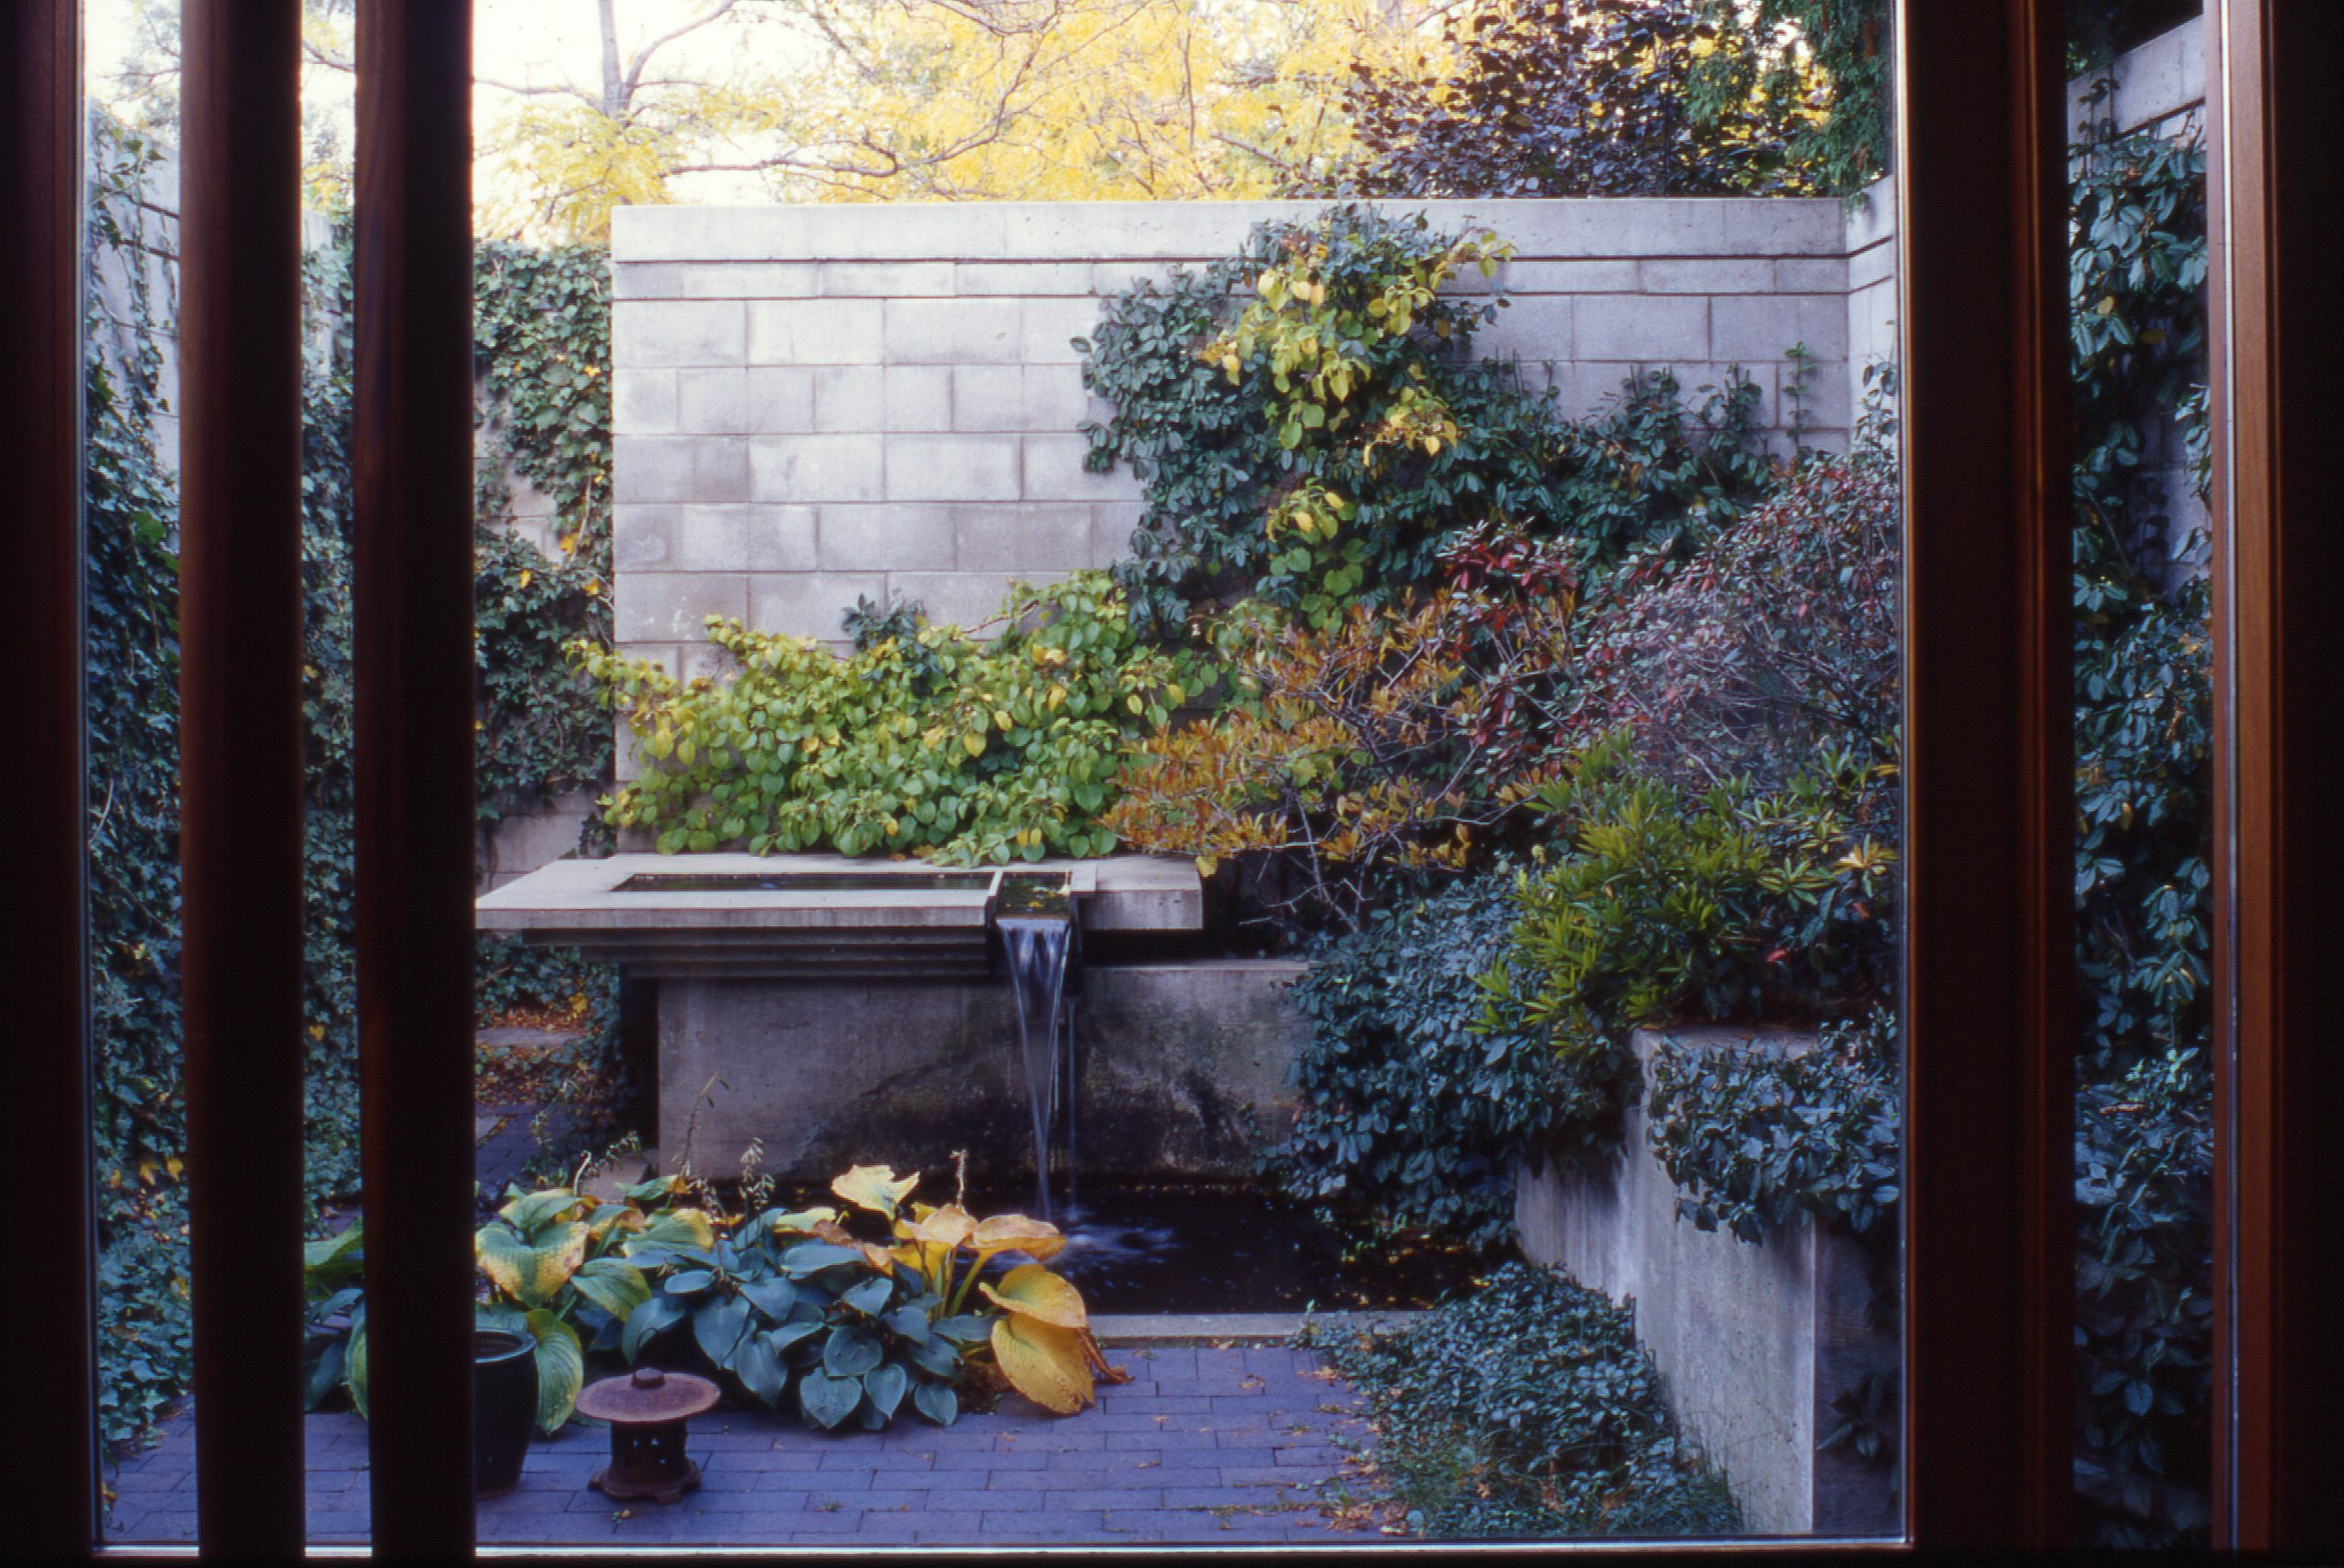 View of exterior courtyard garden from the interior